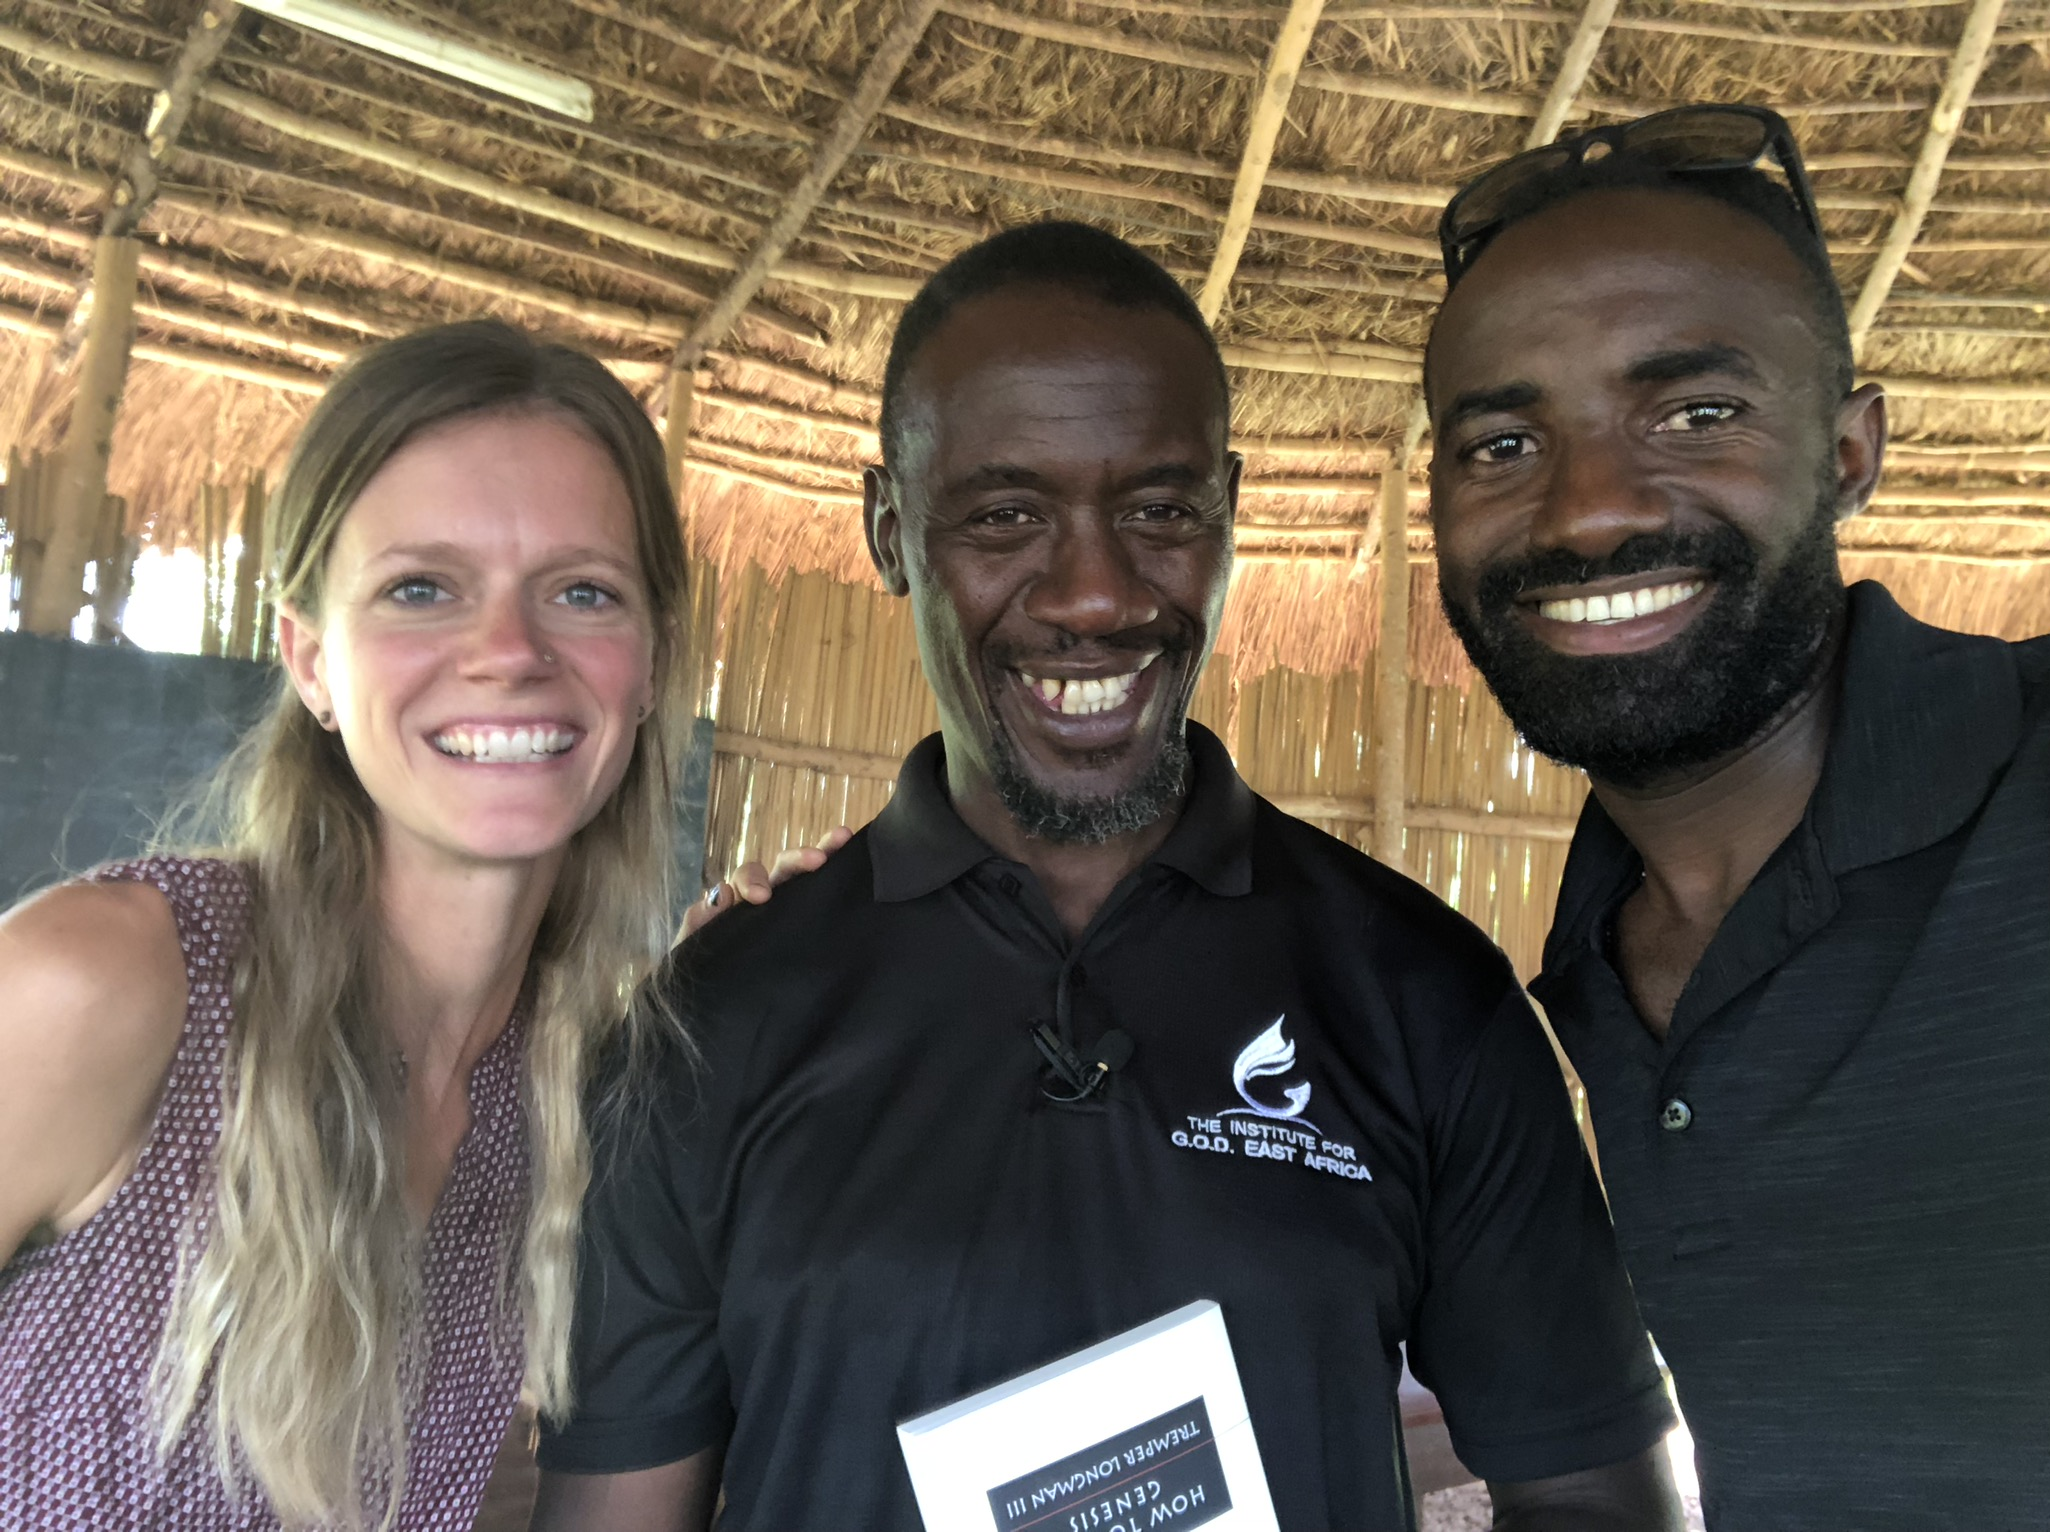 Grace Aaseby and Nyago John delivered books and materials to Peter Kimbugwe, lead instructor at the Institute for G.O.D. EA—a man responsible for passing on the good things we have learned from God to the next generation of students hungry to know him.